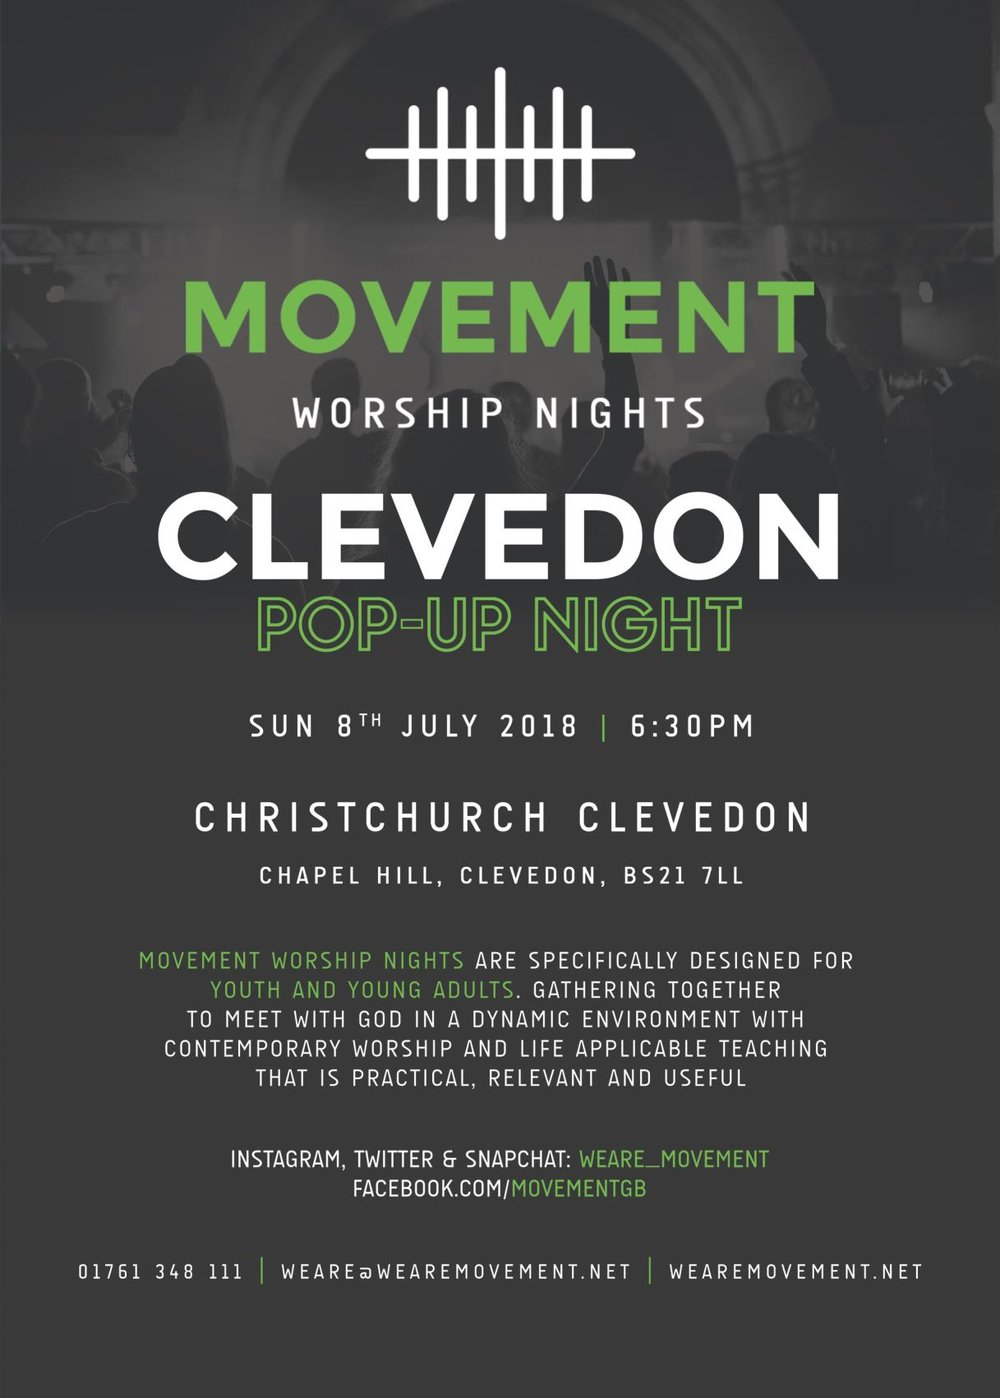 Movement-Pop-Up-Night-Clevedon-2018-A5_Page_1.jpeg